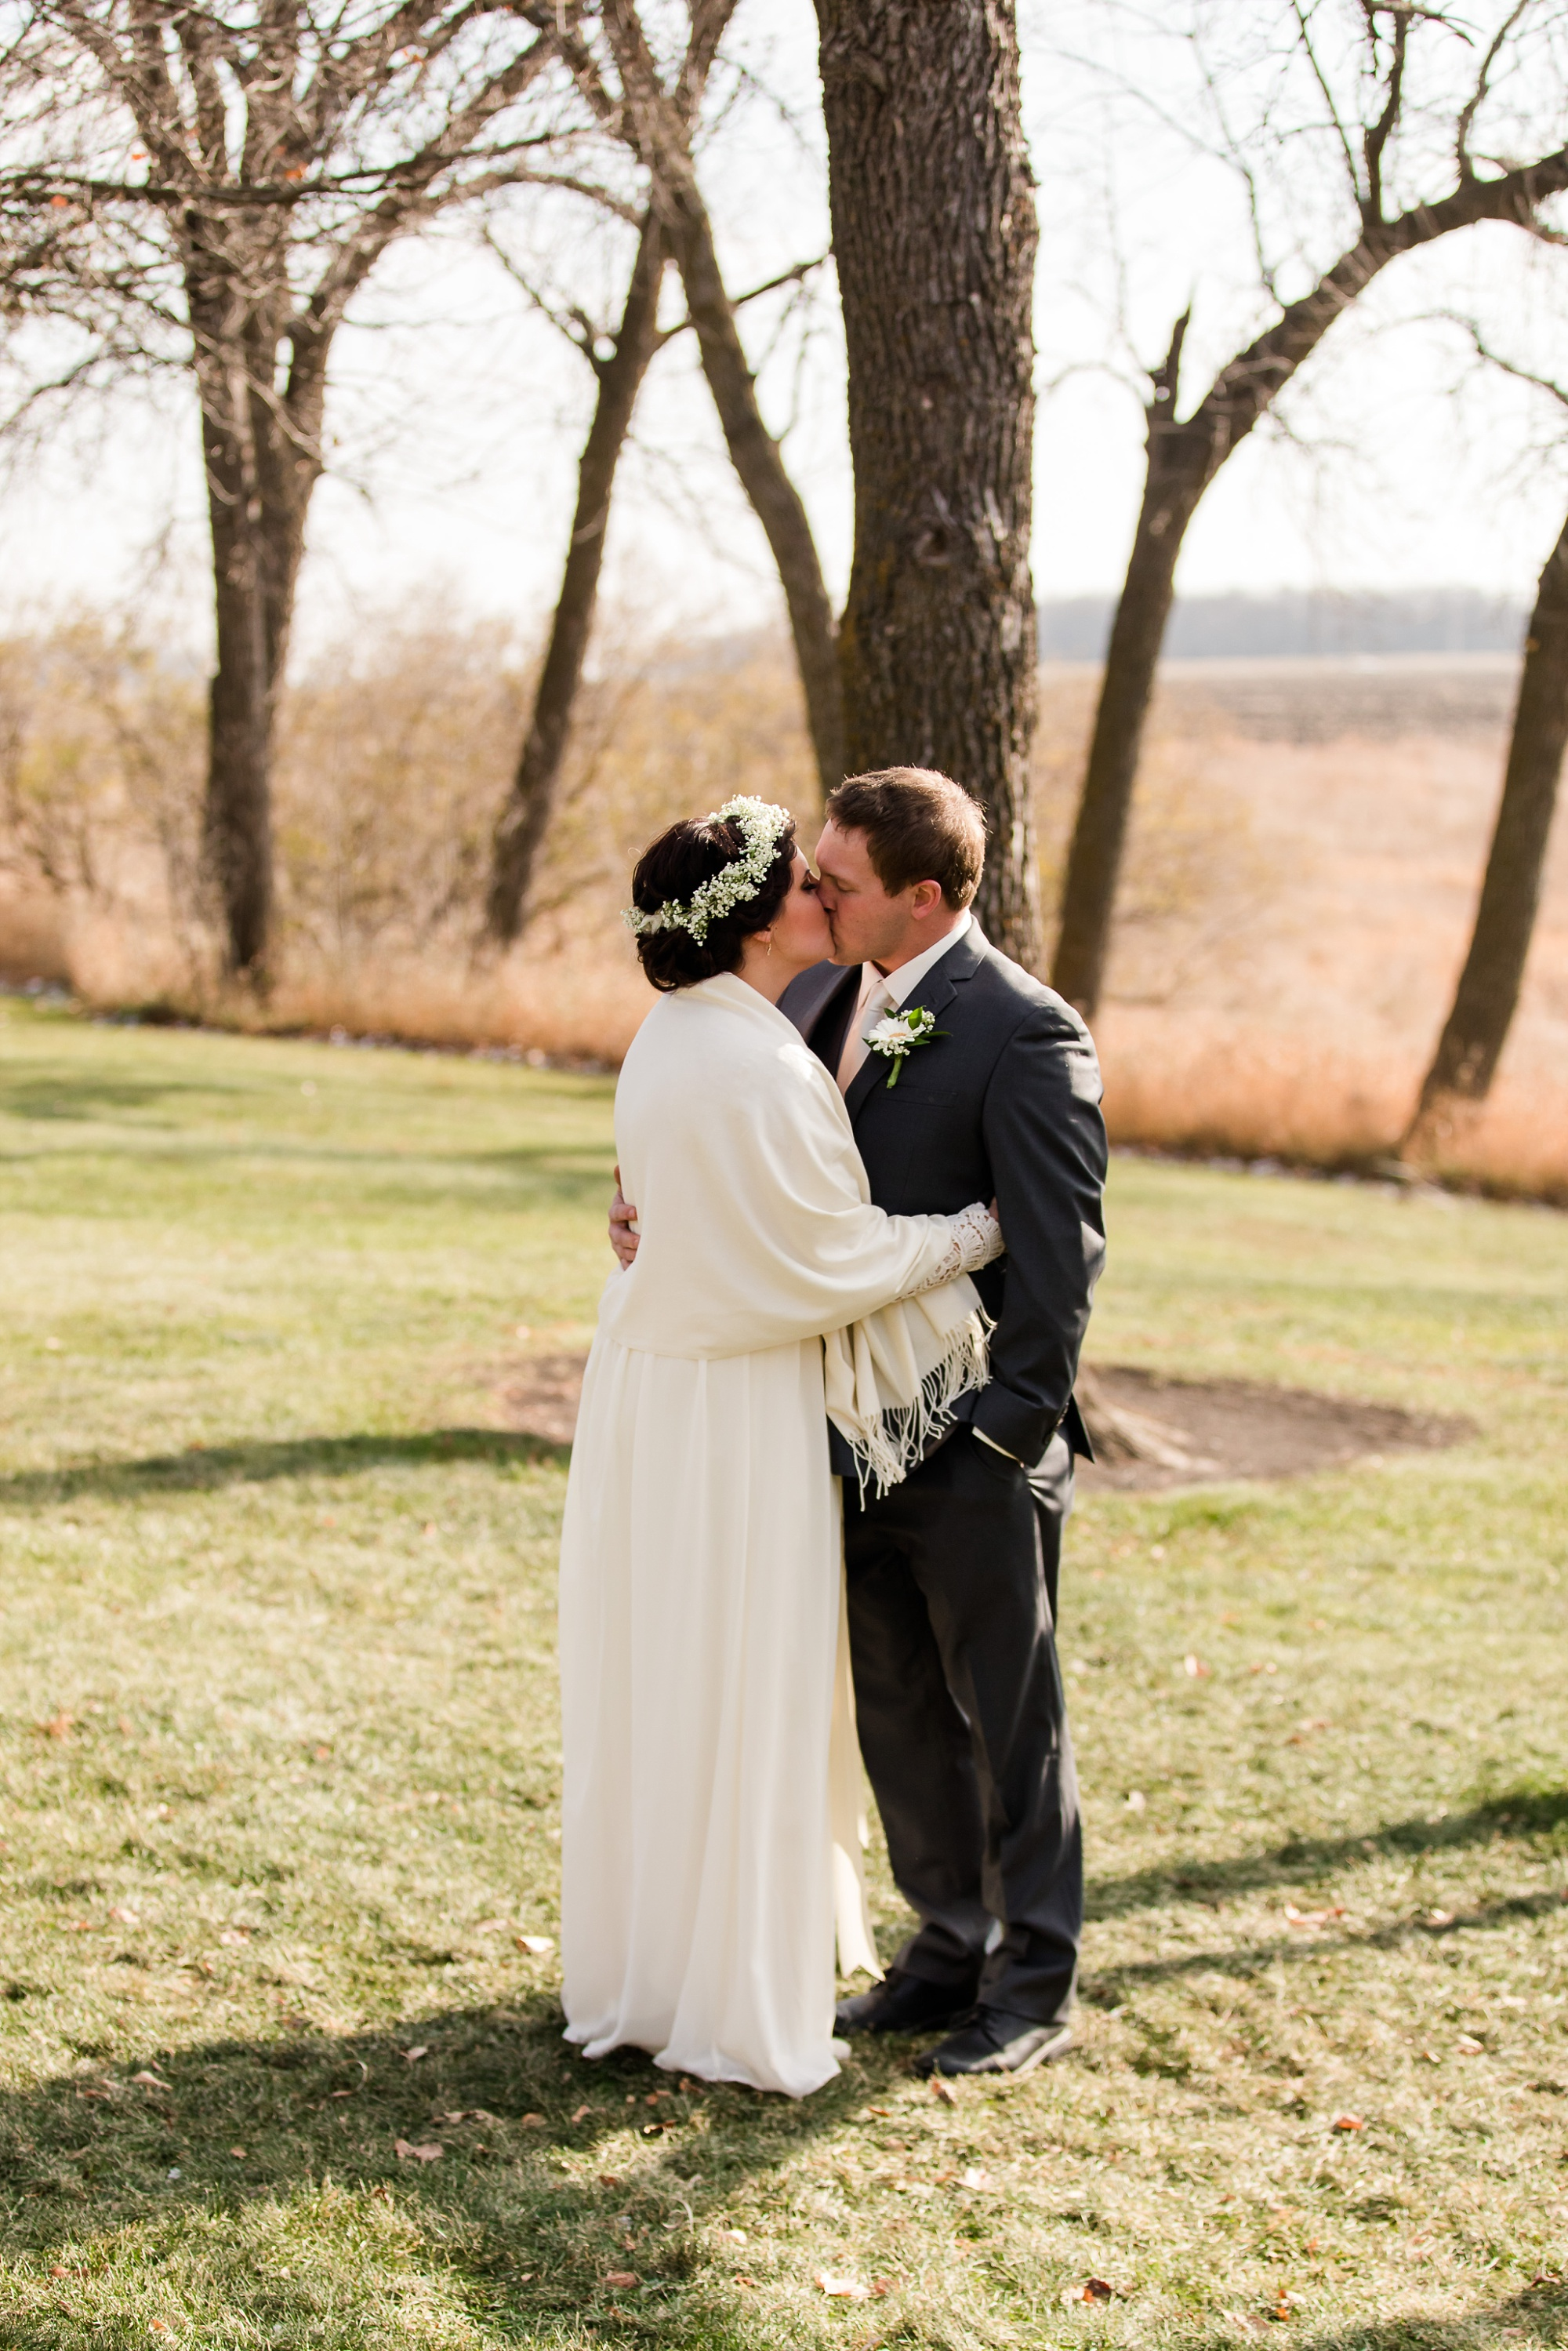 Amber Langerud_Rustic Oaks, MN winter barn wedding_0515.jpg